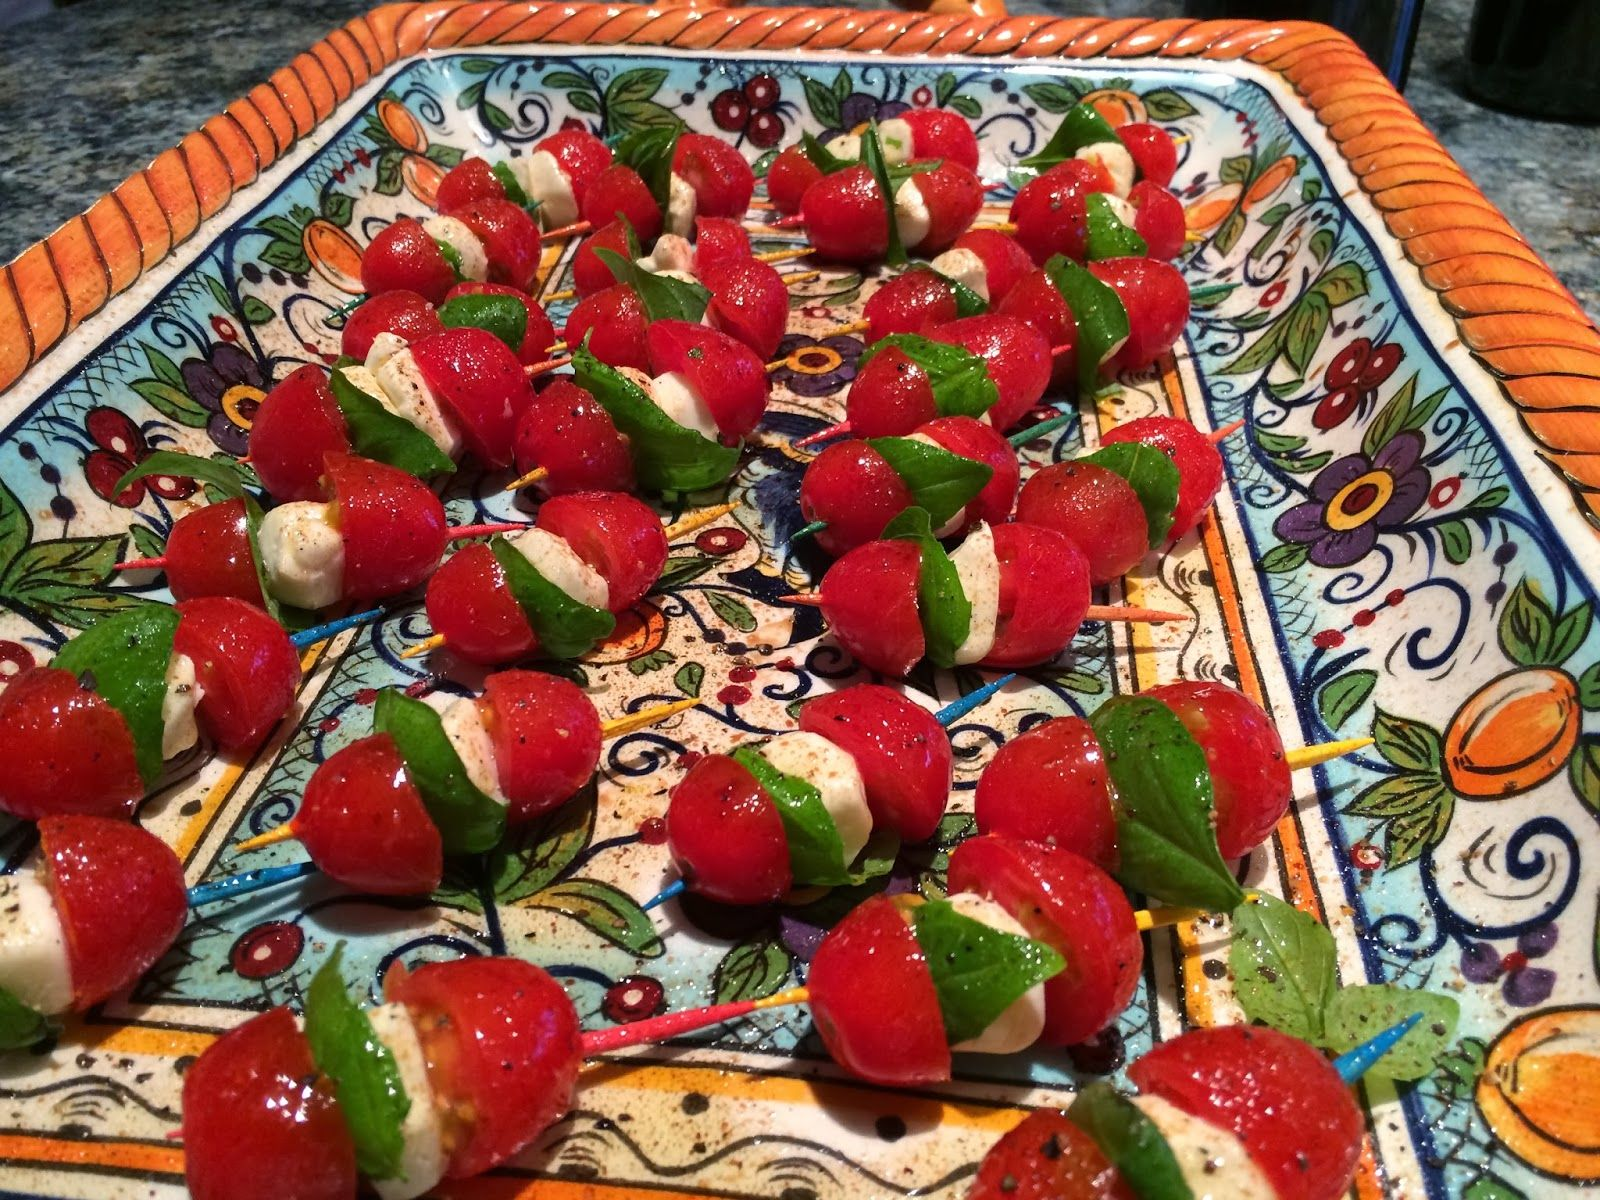 Ideas For An Italian Themed Dinner Party Part - 43: Girlu0027s Dine In: Italian-themed Dinner Party Ideas And Recipes